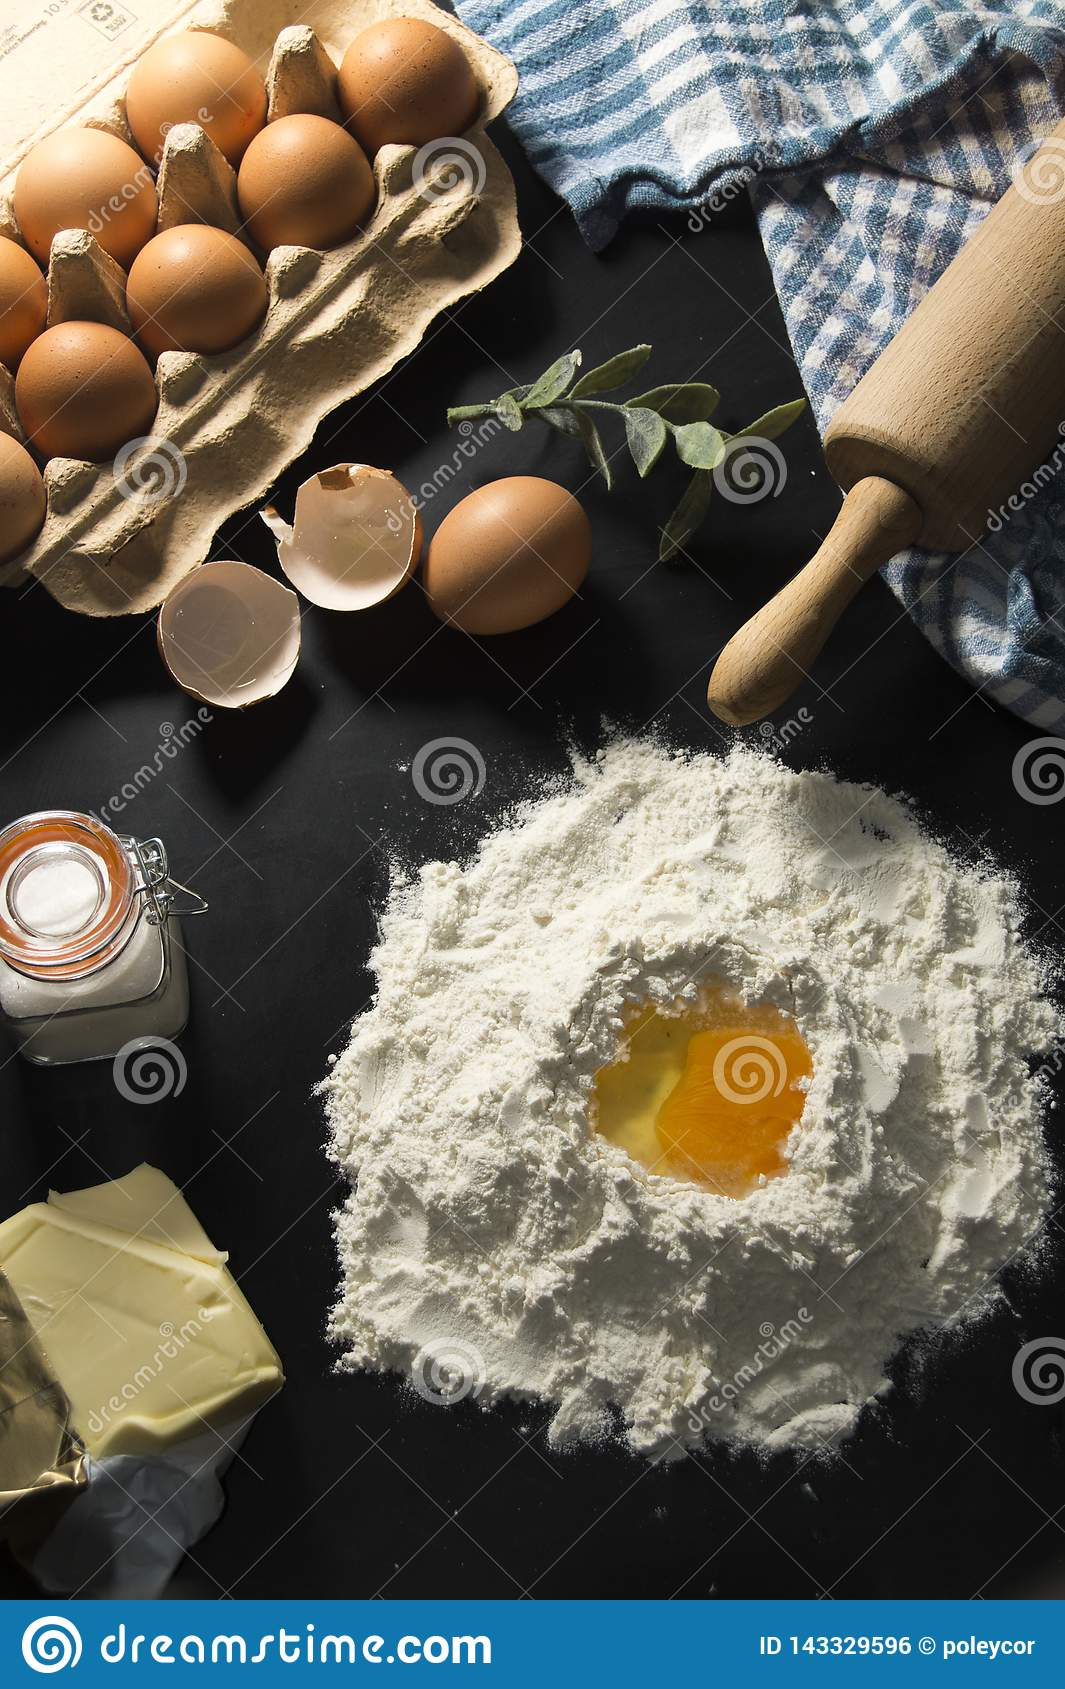 Ingredients of making a cake or pie, with eggs, sugar and butter.